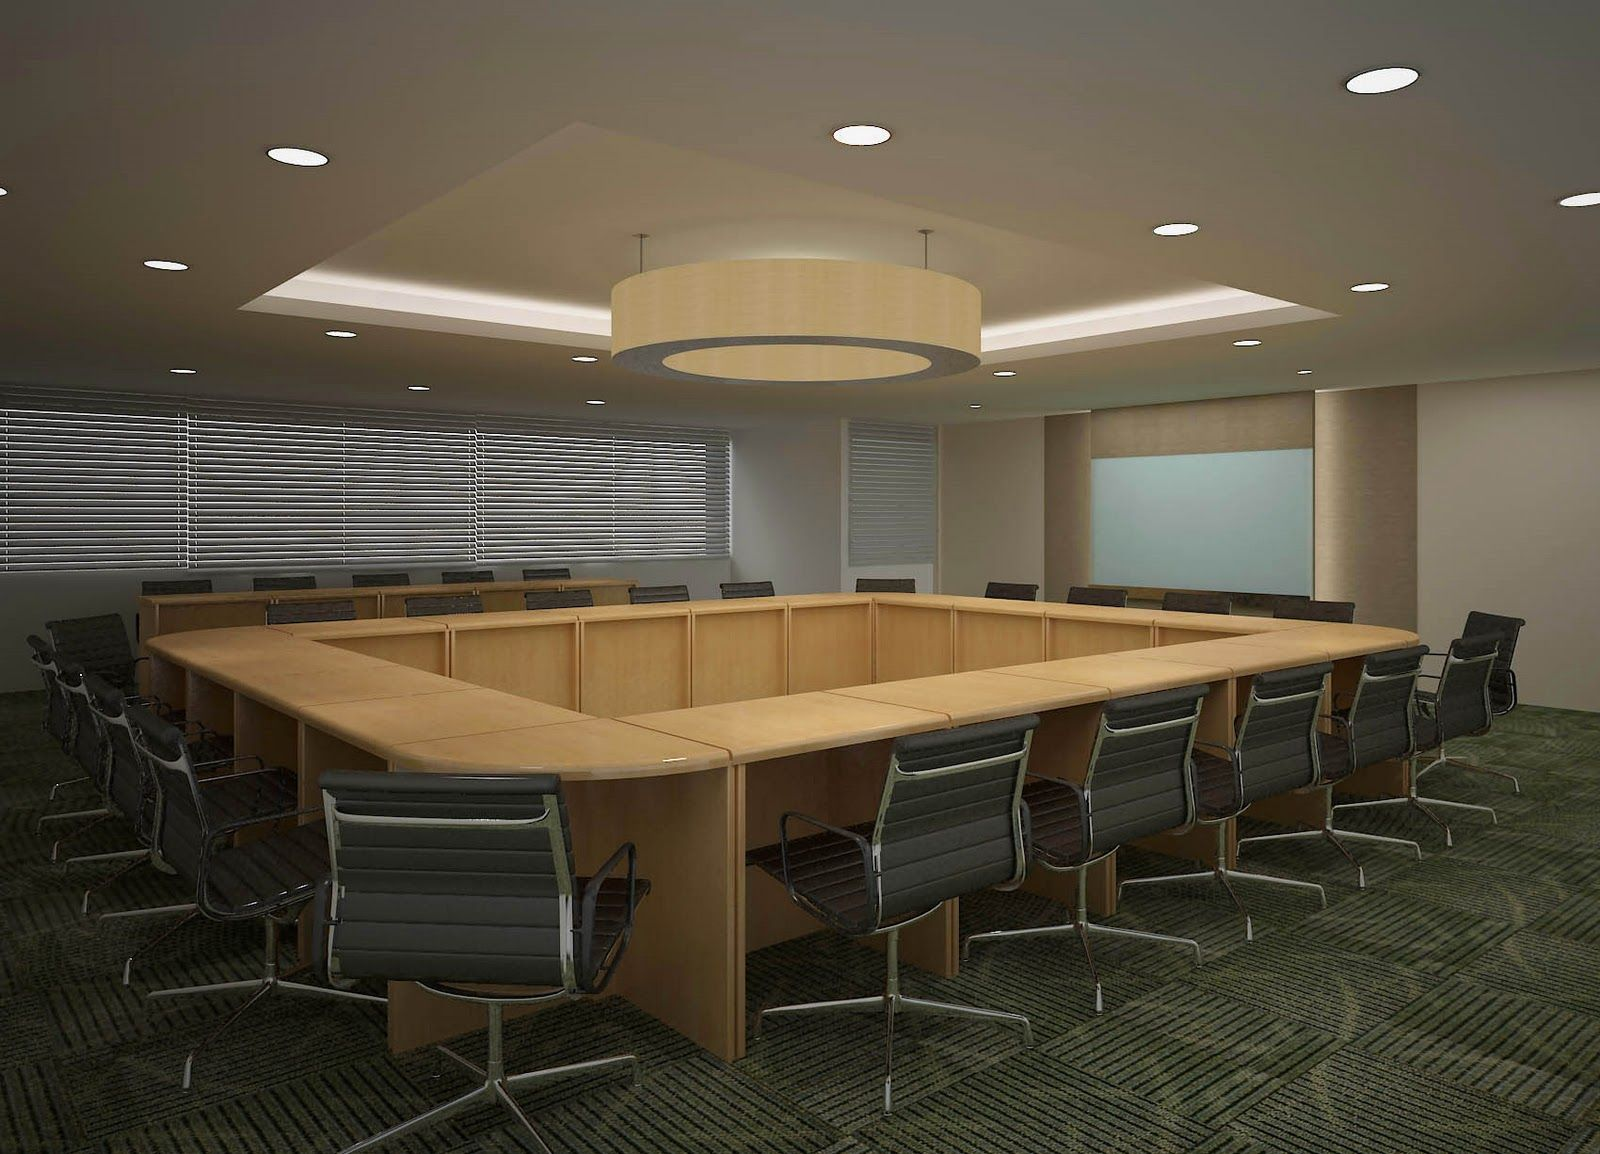 17 best images about conference design on pinterestbusiness - Conference Room Design Ideas